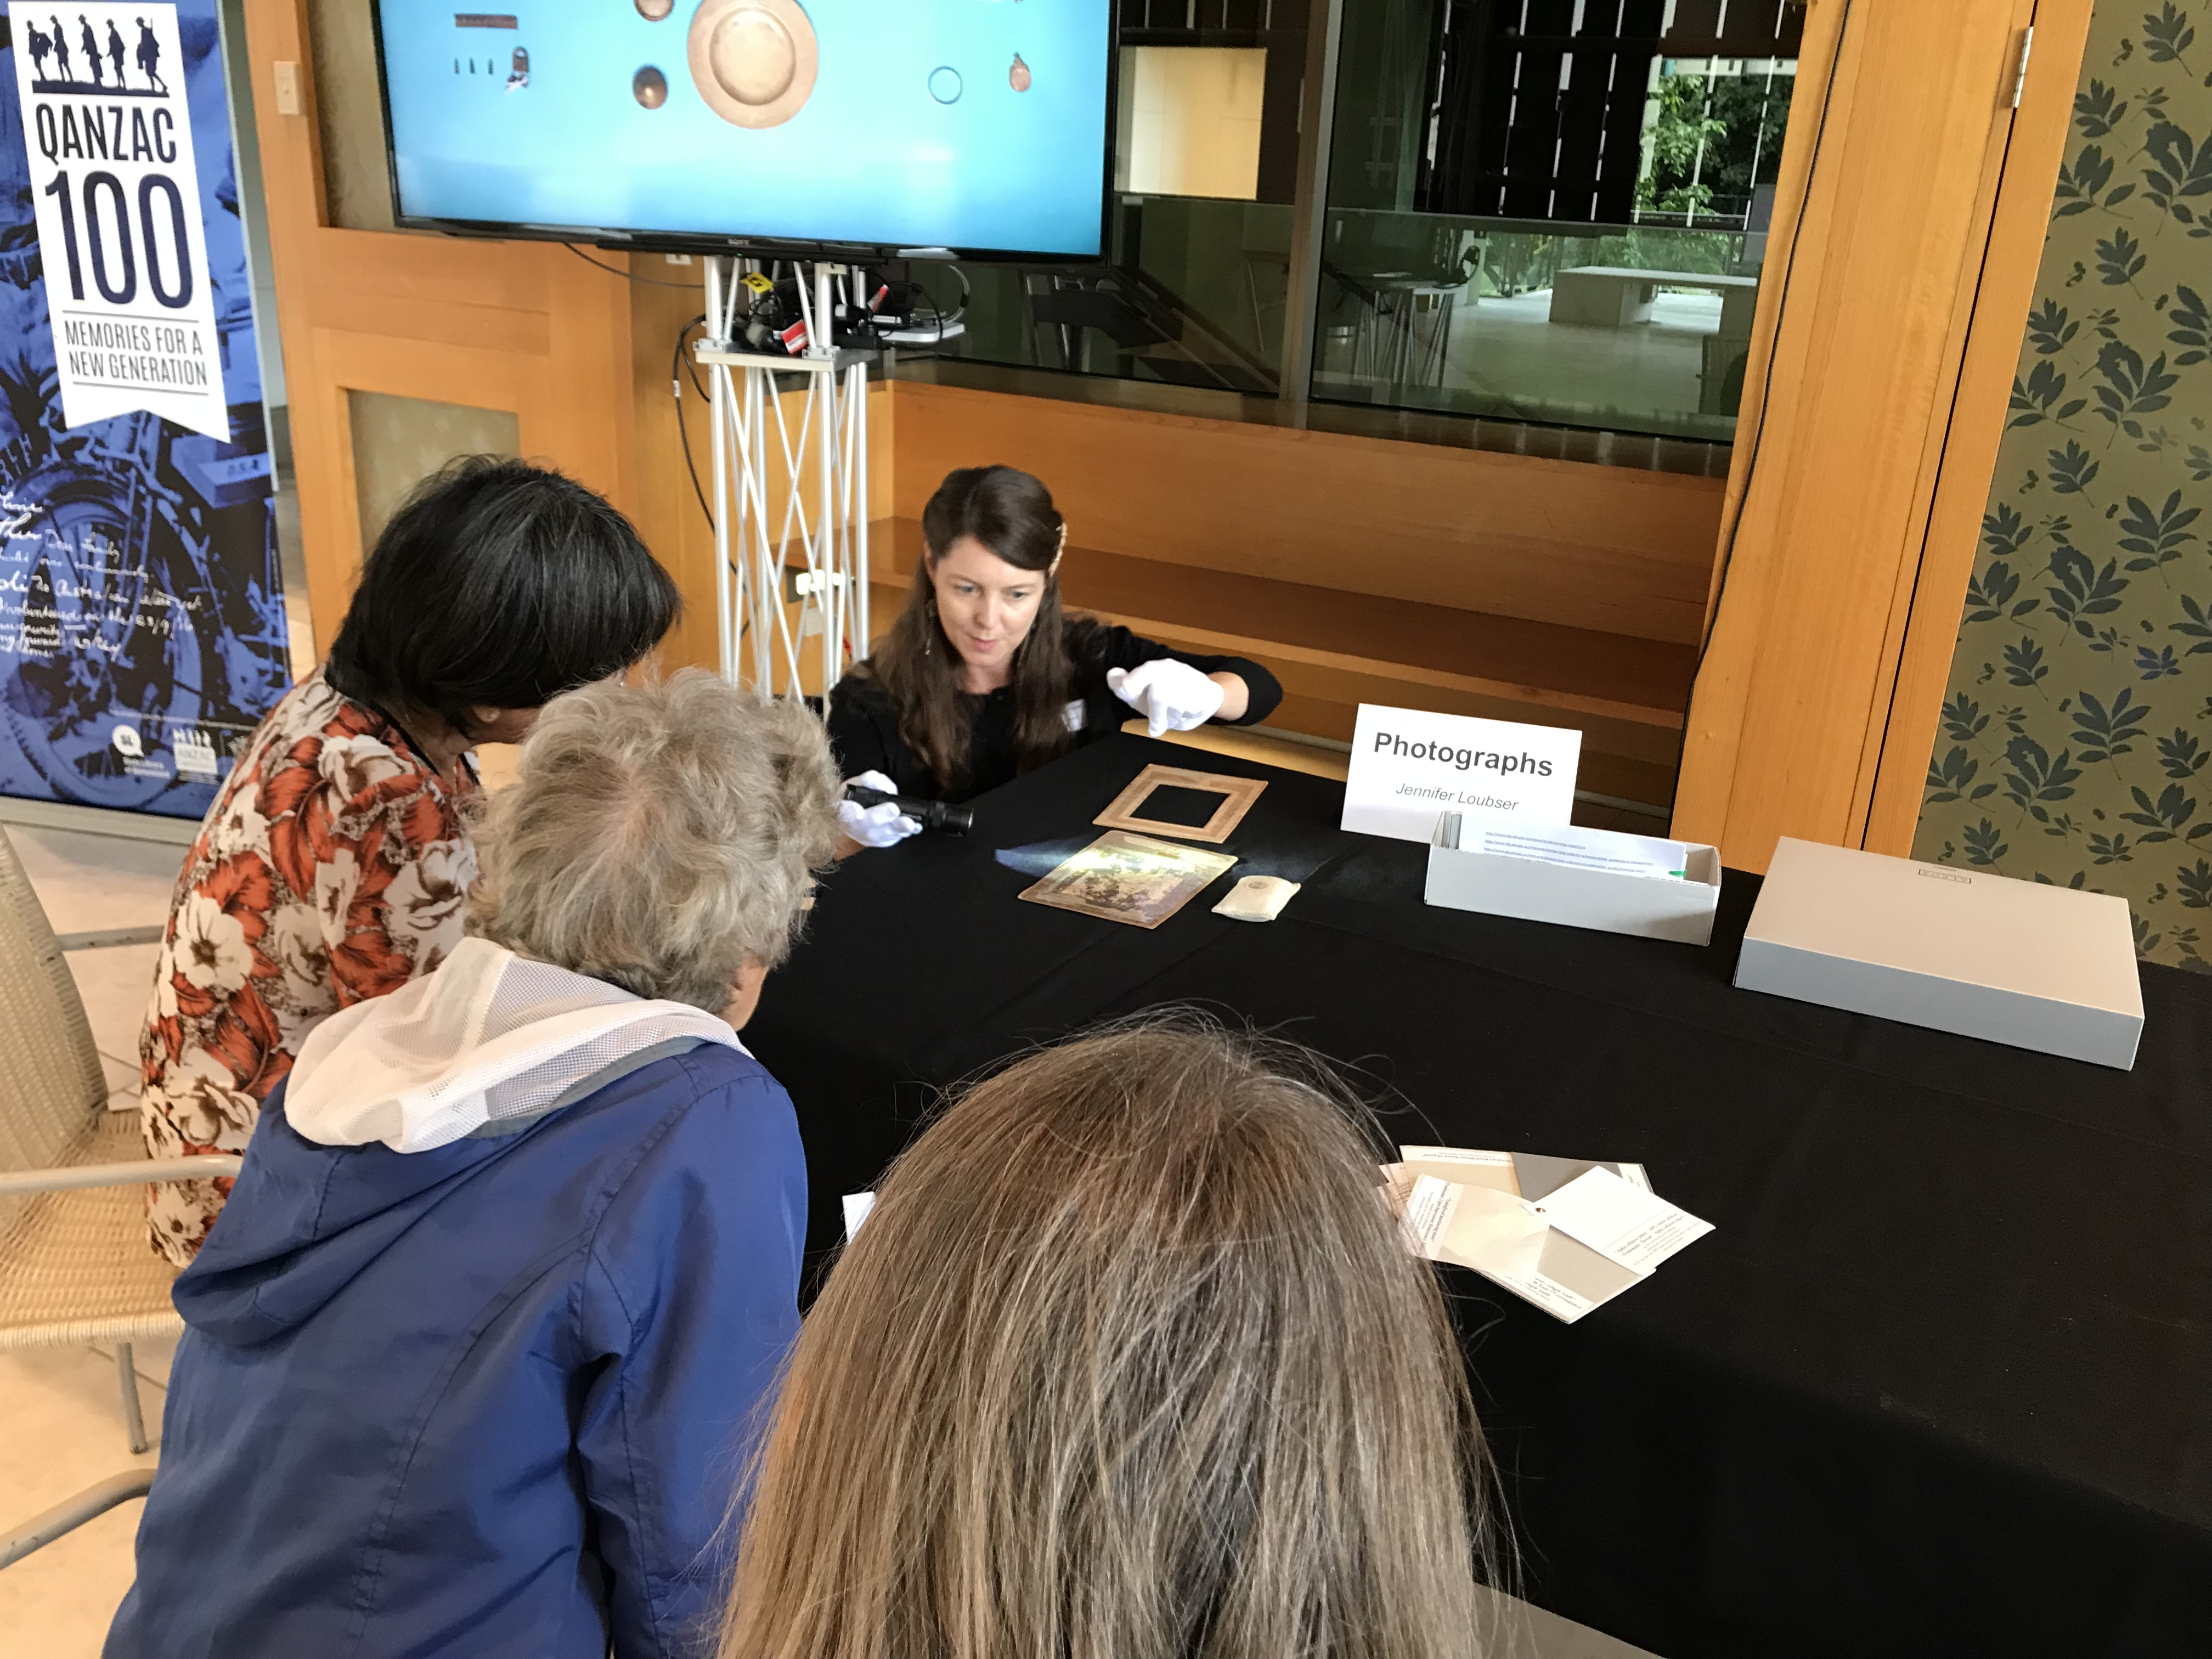 State Library conservator providing advice on caring for family photographs